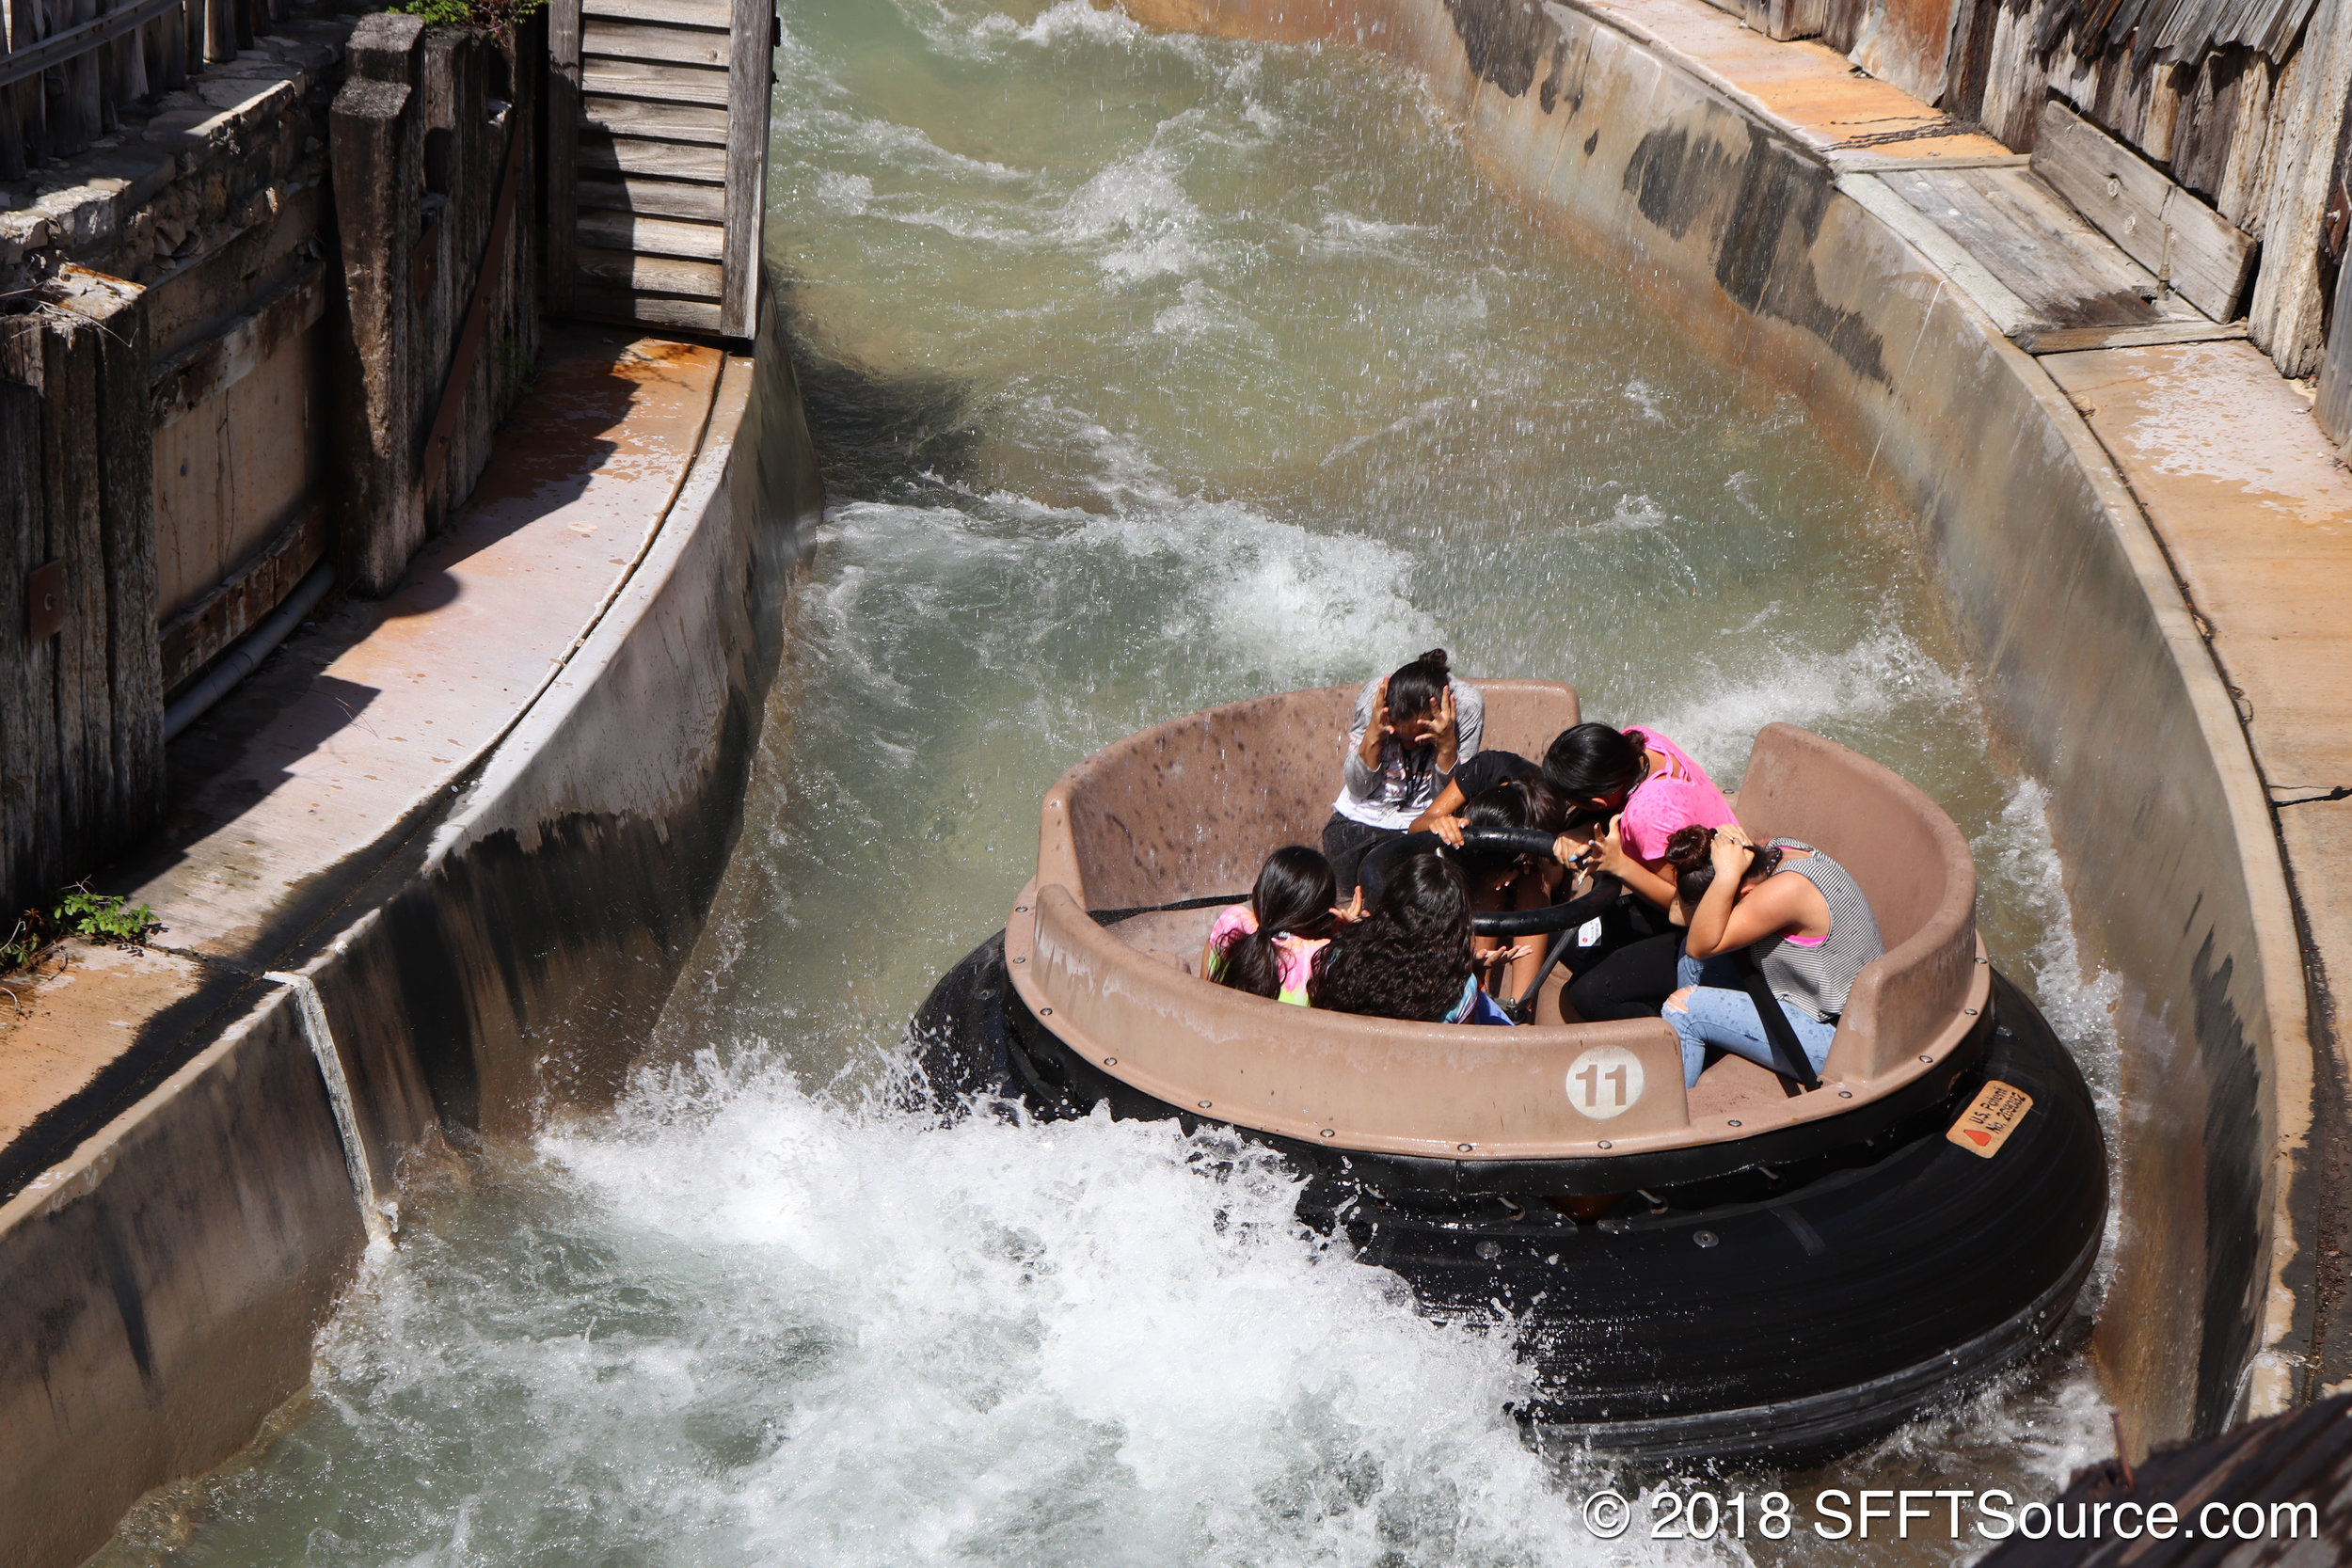 This ride is guaranteed to soak you.